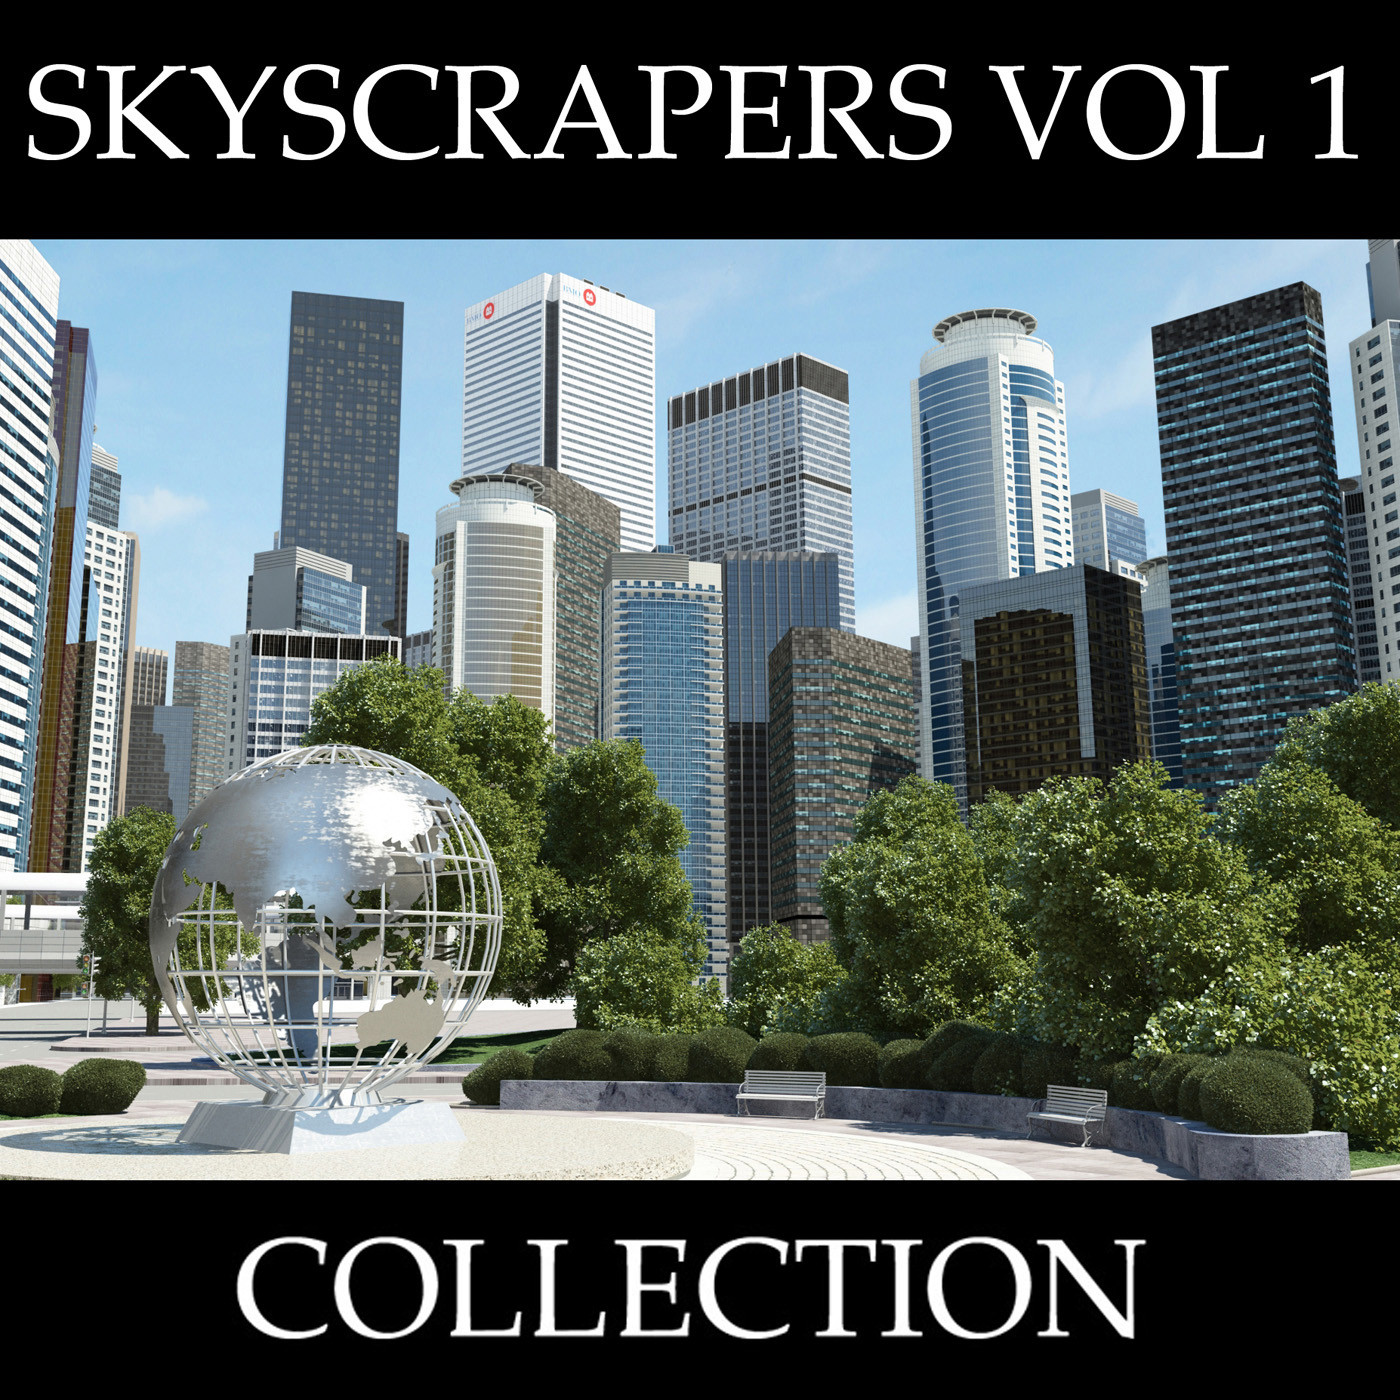 Skyscrapers_collection_day_new.jpg